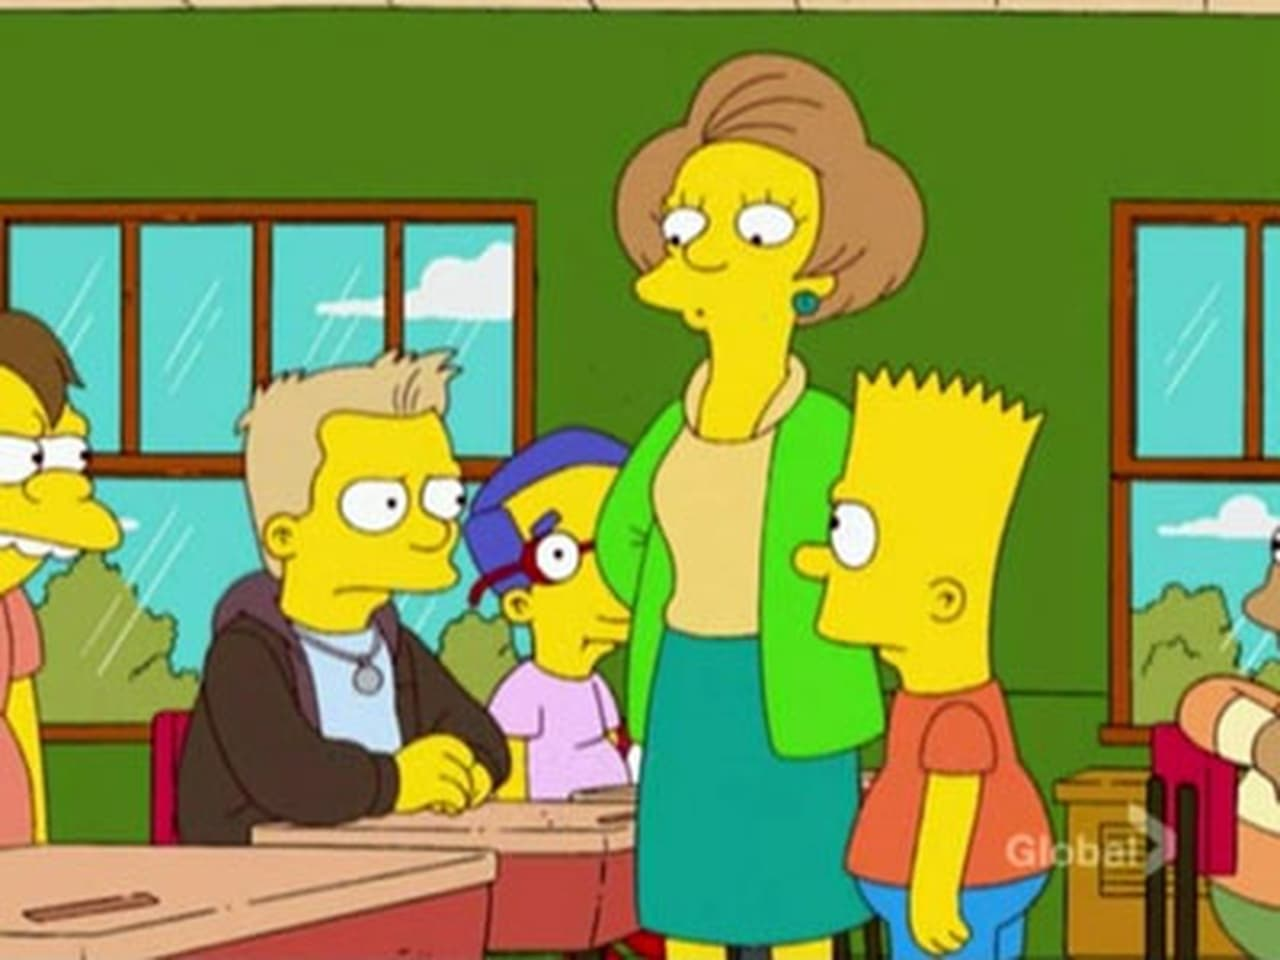 The Simpsons - Season 19 Episode 13 : The Debarted